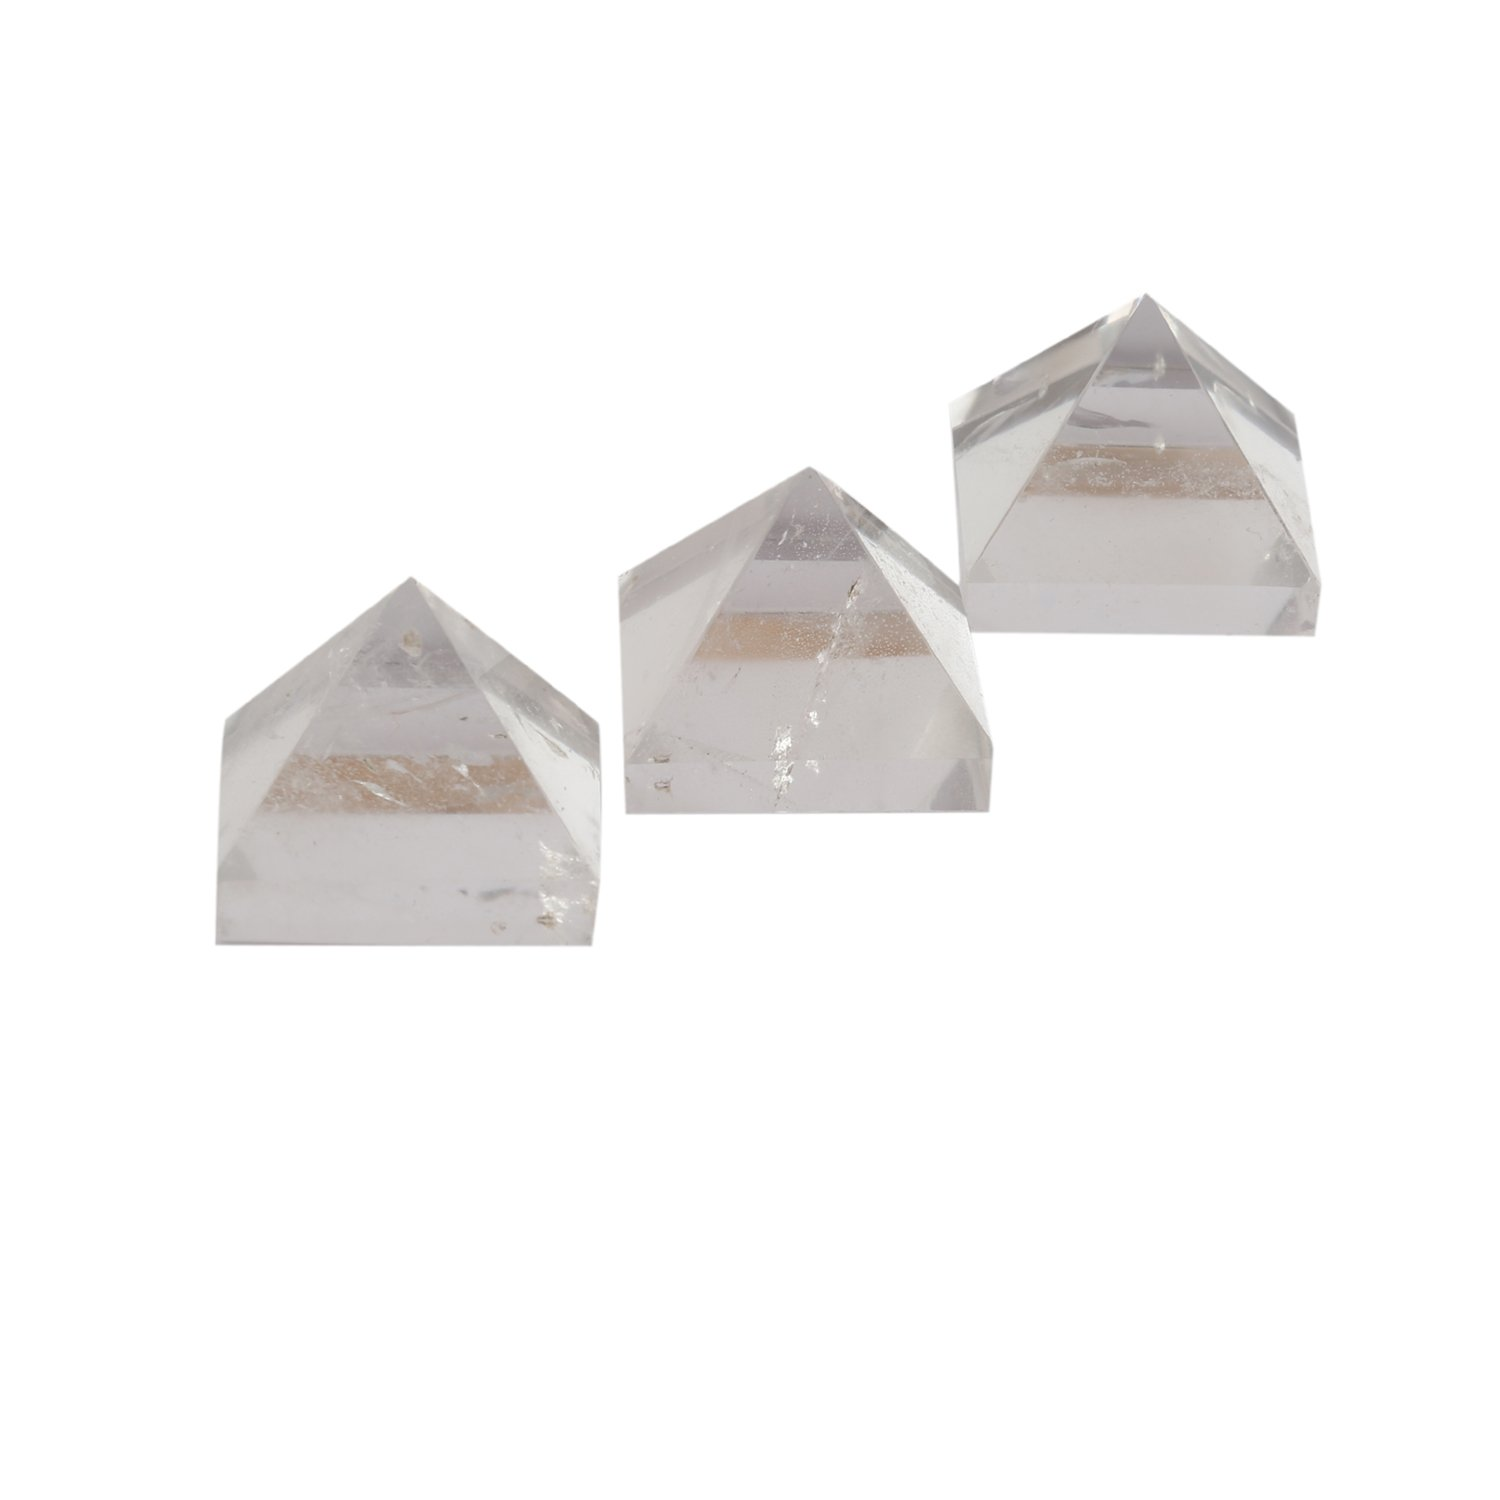 Aatm Collection Crystal 1 Inch Pyramid Energy Generator For Protection Meditation Healing (Set Of 3)